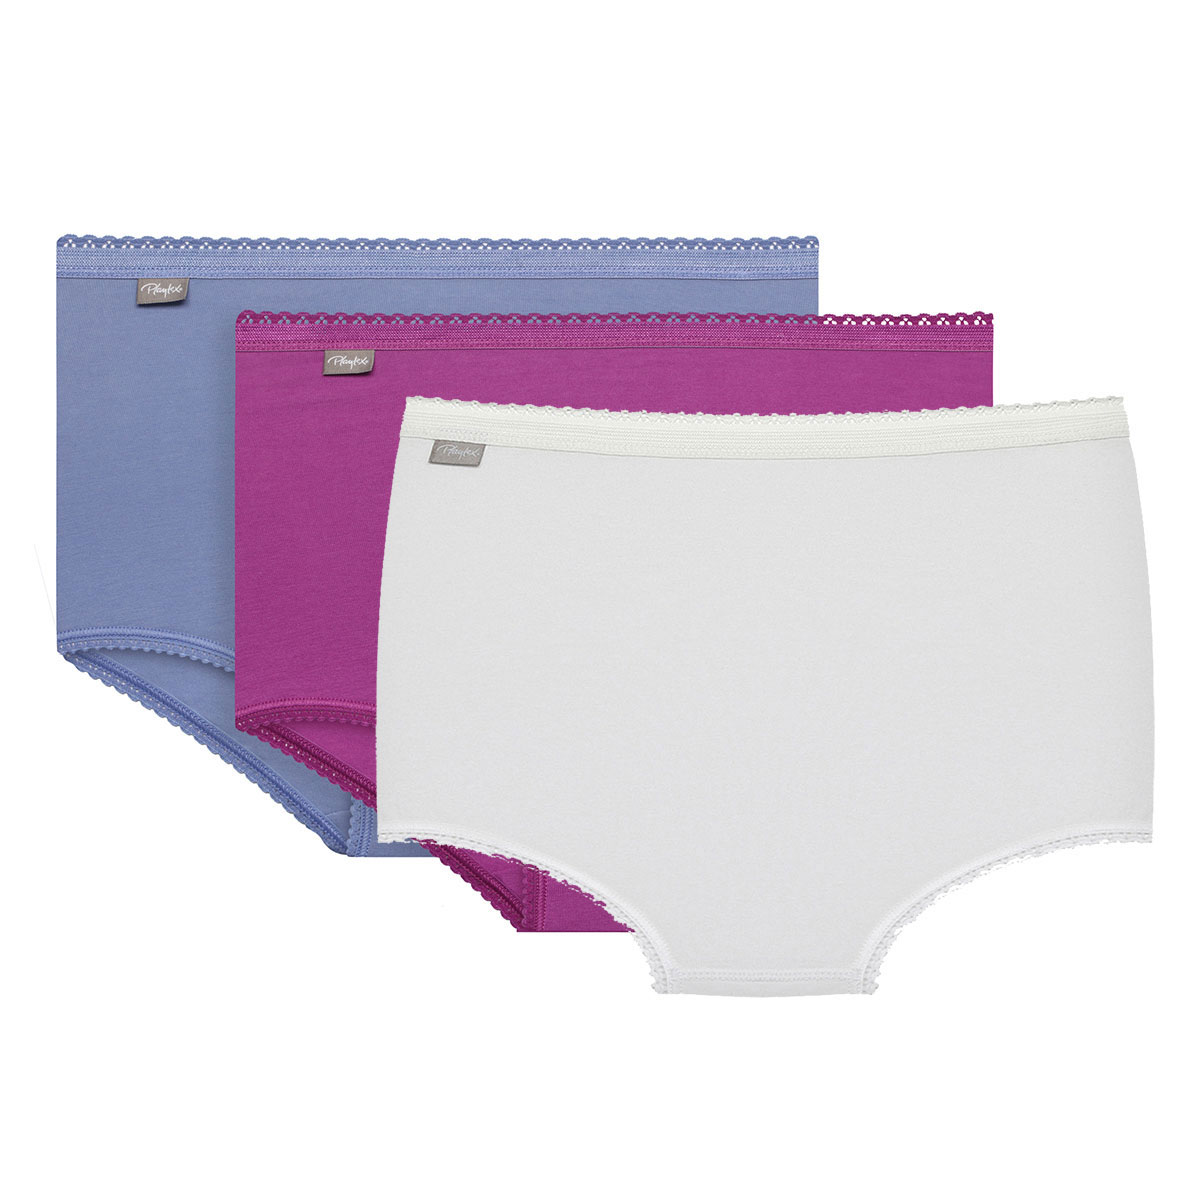 3 Pack Midi briefs : white, purple and blue - Cotton Stretch-PLAYTEX